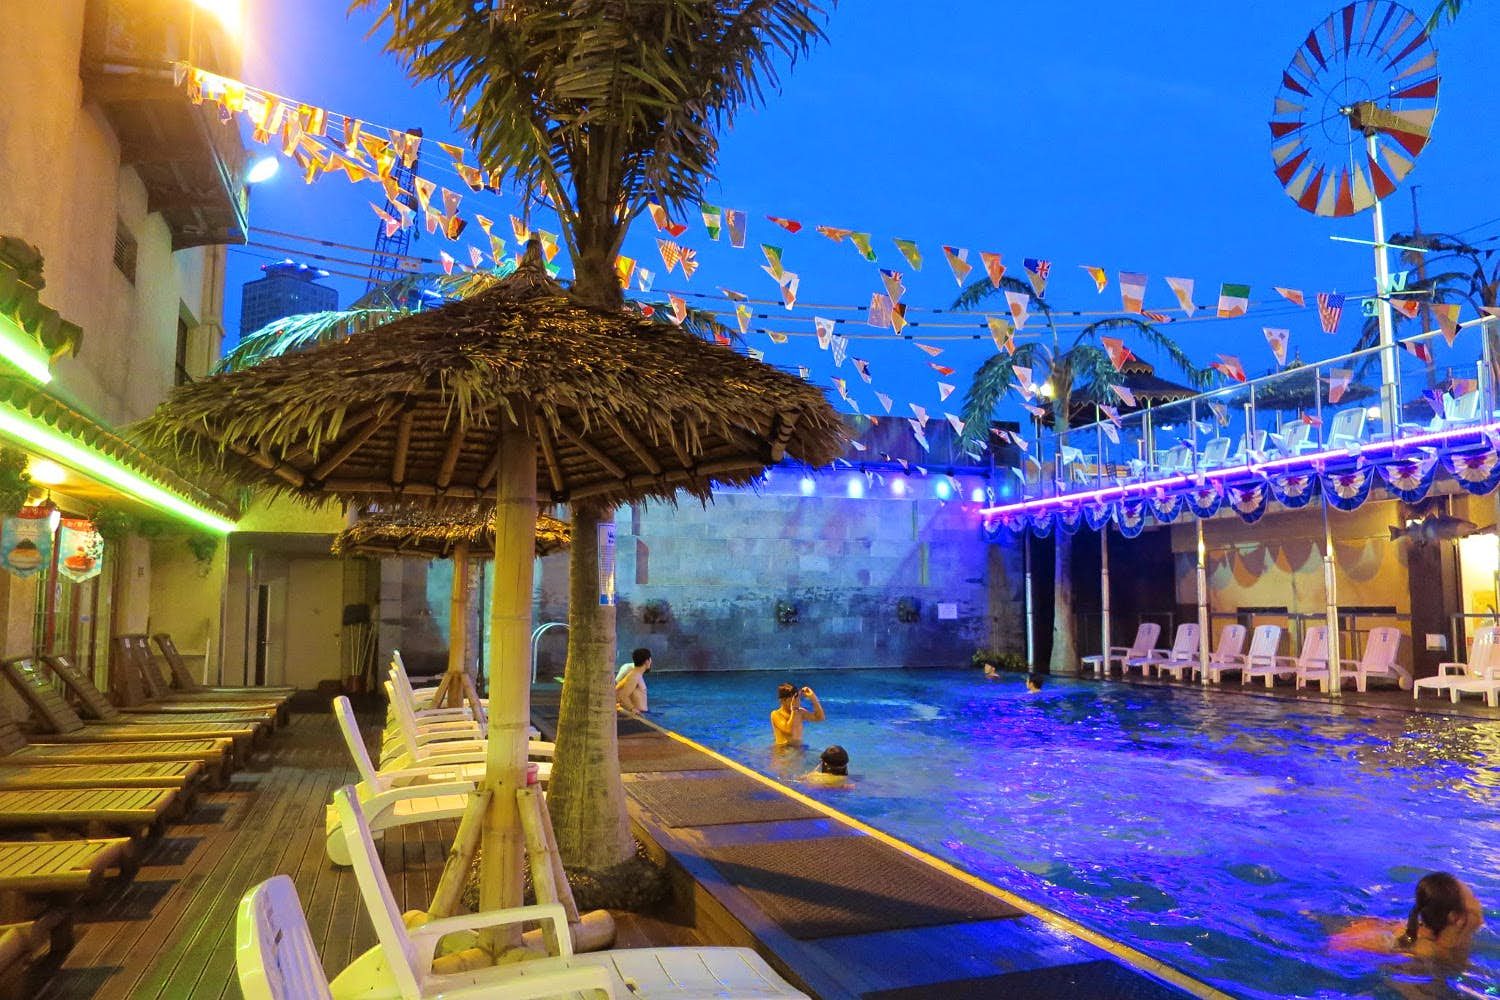 The outdoor pool at Dragon Hill Spa in Seoul. Image by Megan Eaves / Lonely Planet